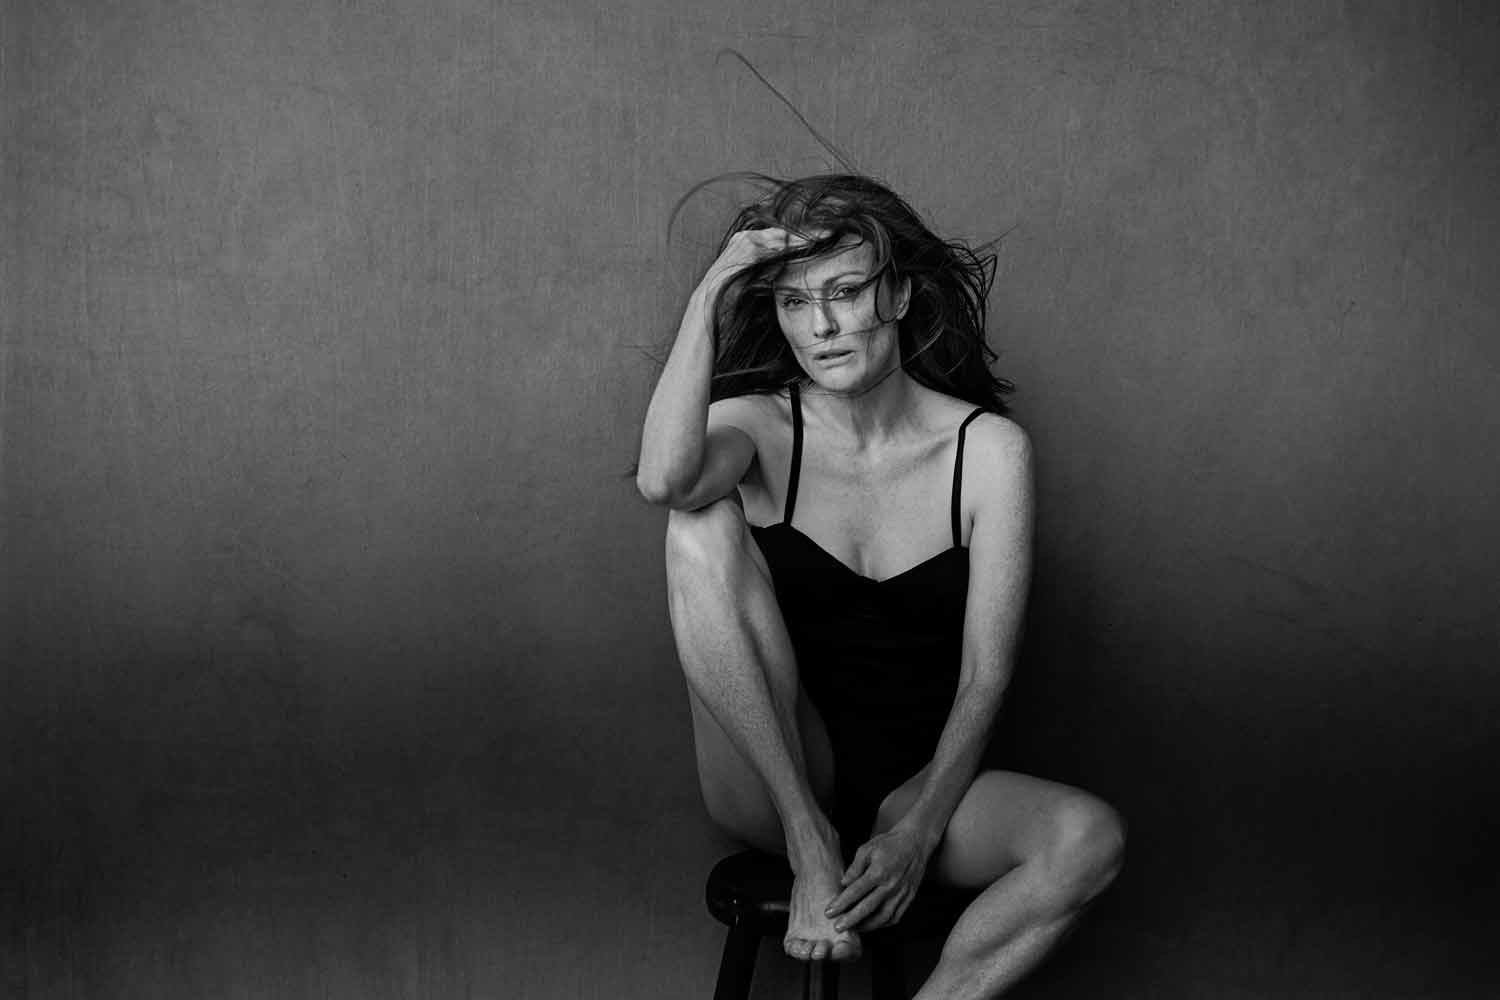 julianne moore - Pirelli